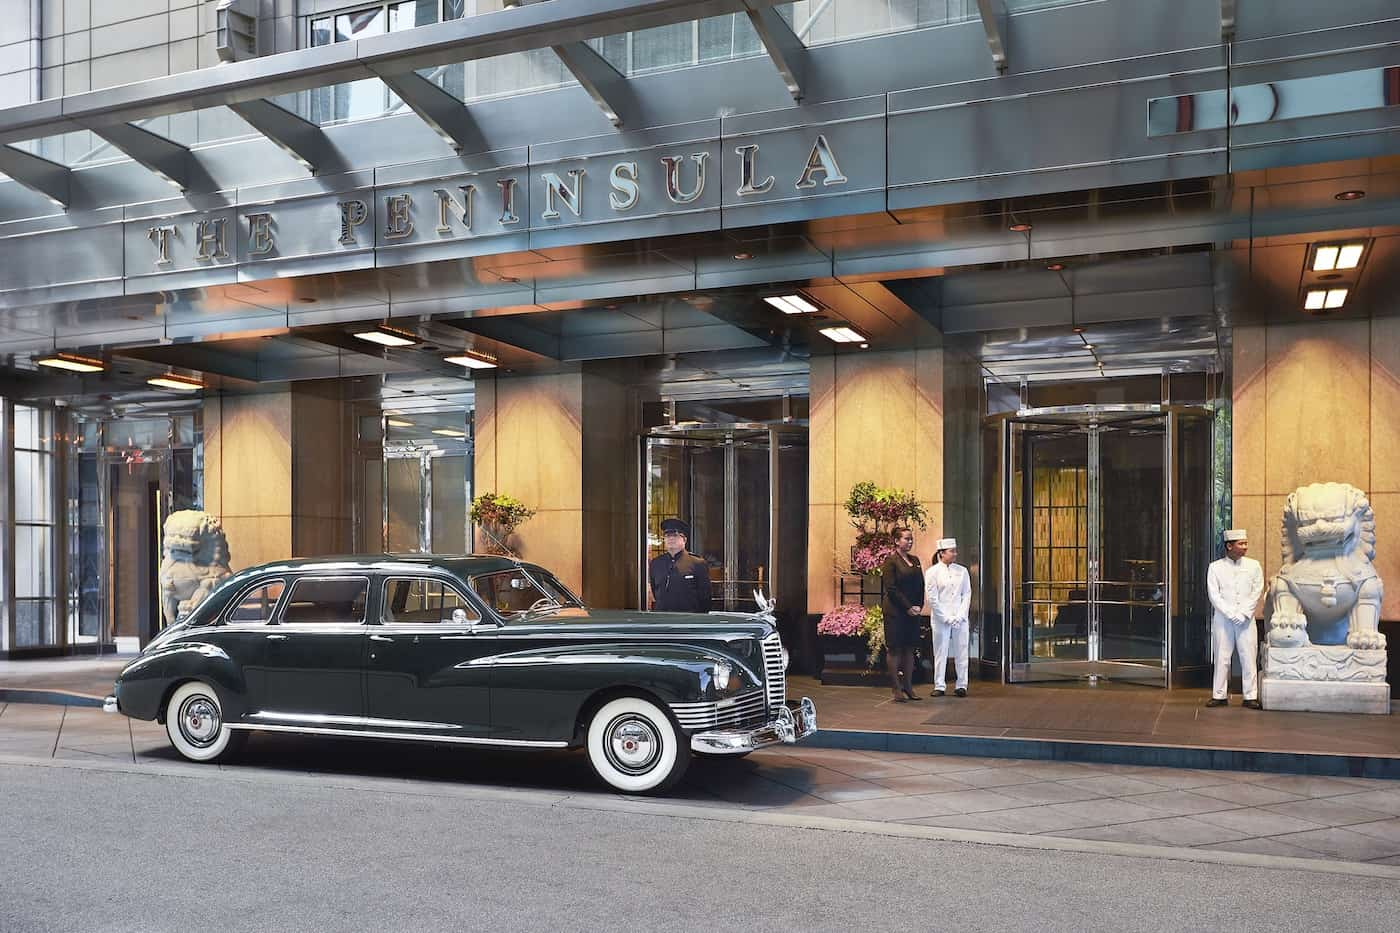 El ultra lujoso The Peninsula Chicago anuncia su programa ?Keys To The City? 2019